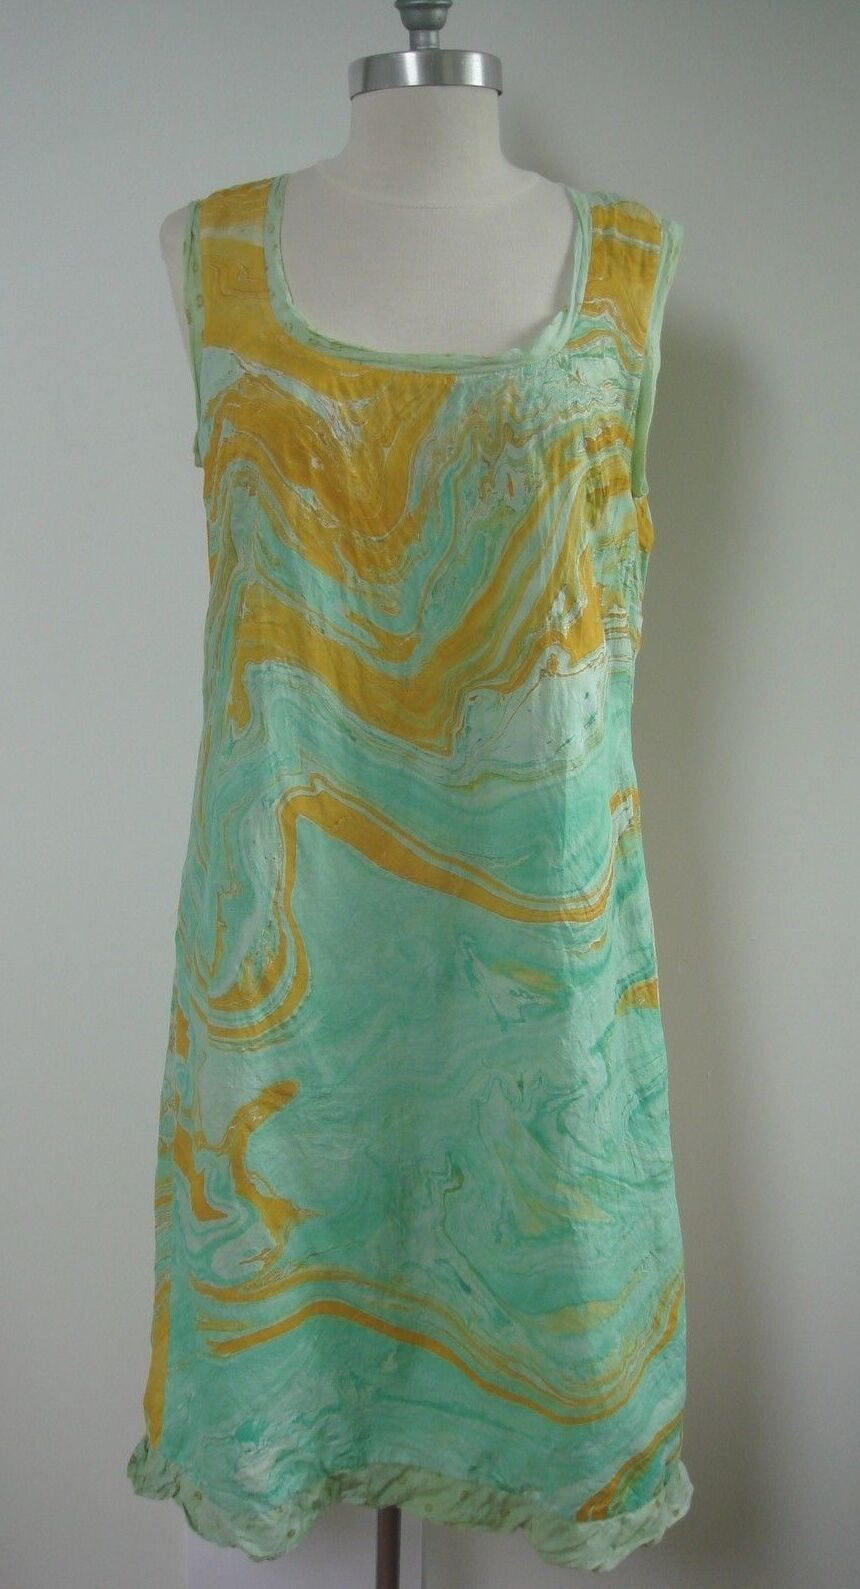 DOSA marbleized silk and floral cotton reversible dress size 3 WORN ONCE